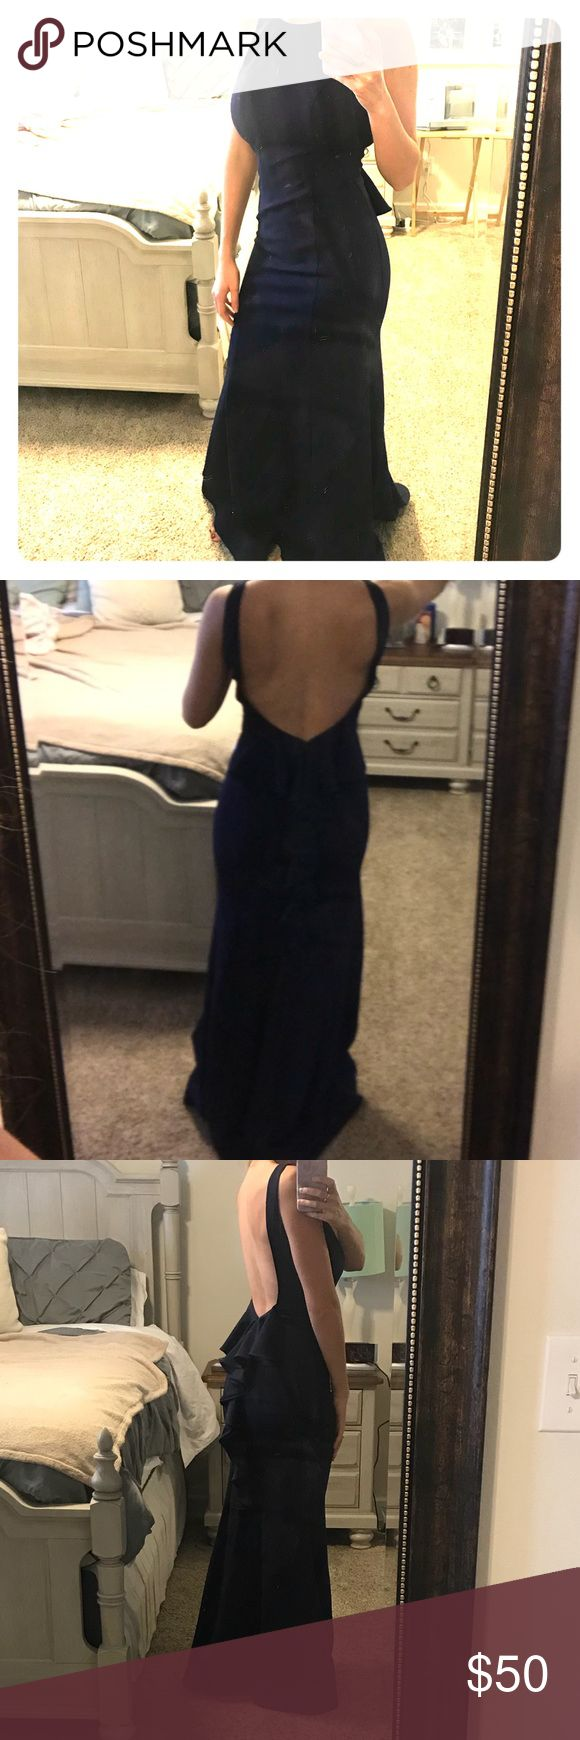 Navy Gown Gorgeous navy gown with open back and built in bra padding — worn only once to a Gala. Size 3. Excellent condition. I'm 5'6 about 125 lbs and this fits me like a glove. Macy's Dresses Backless